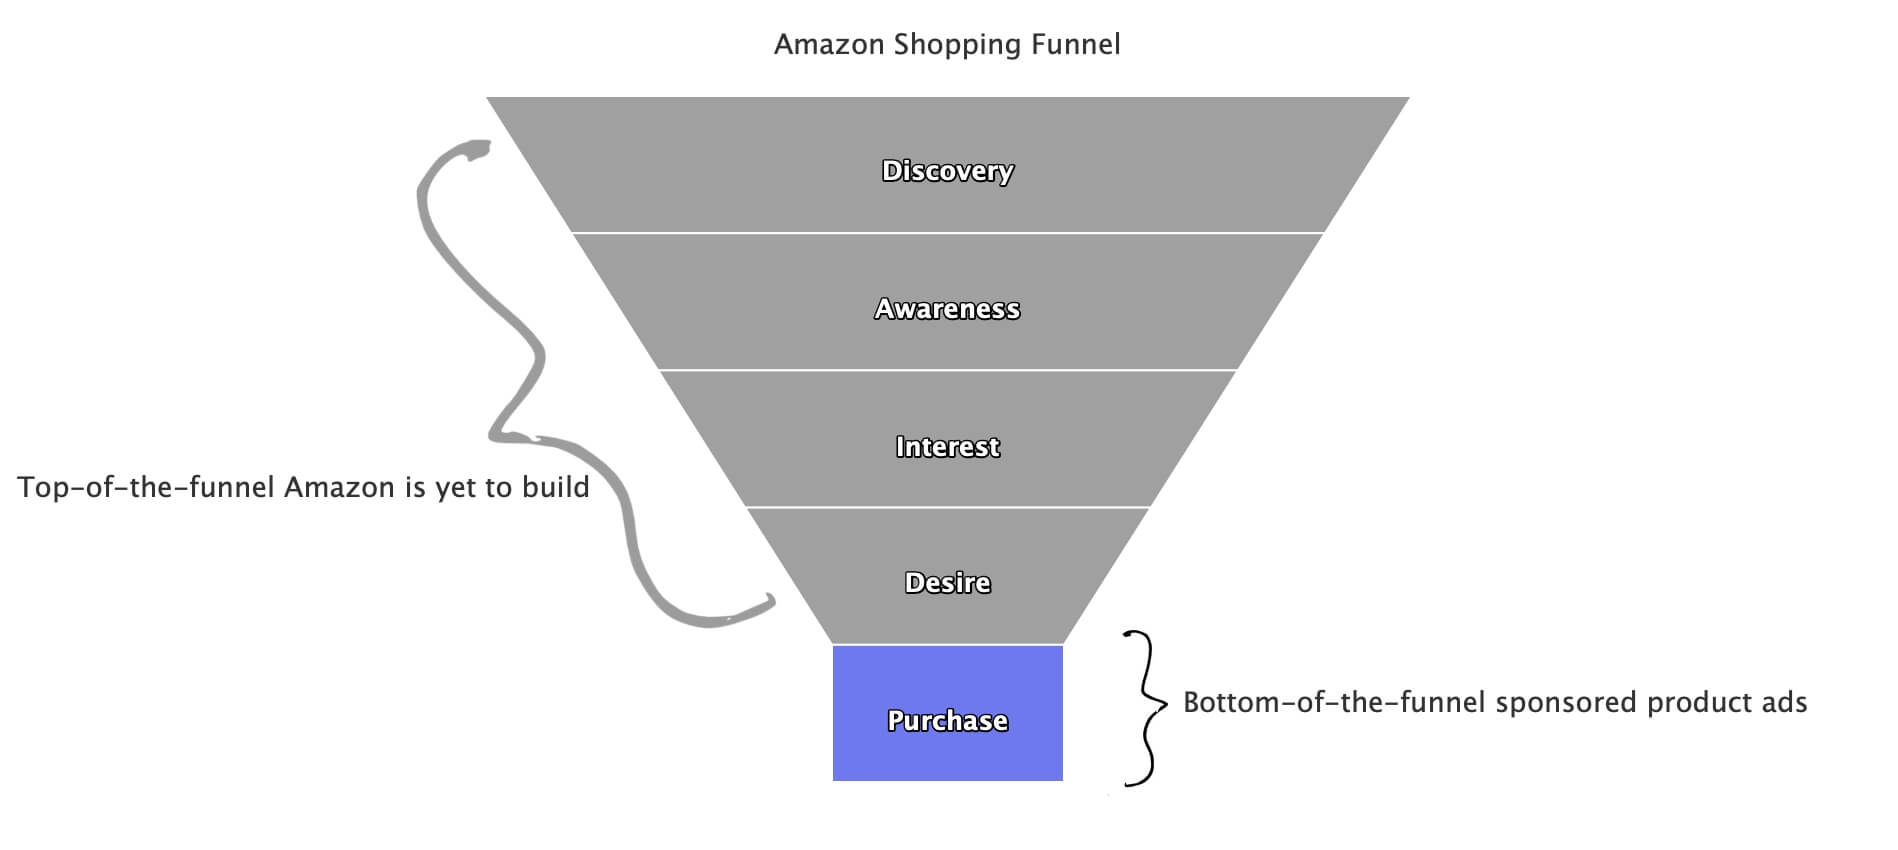 Amazon Shopping Funnel